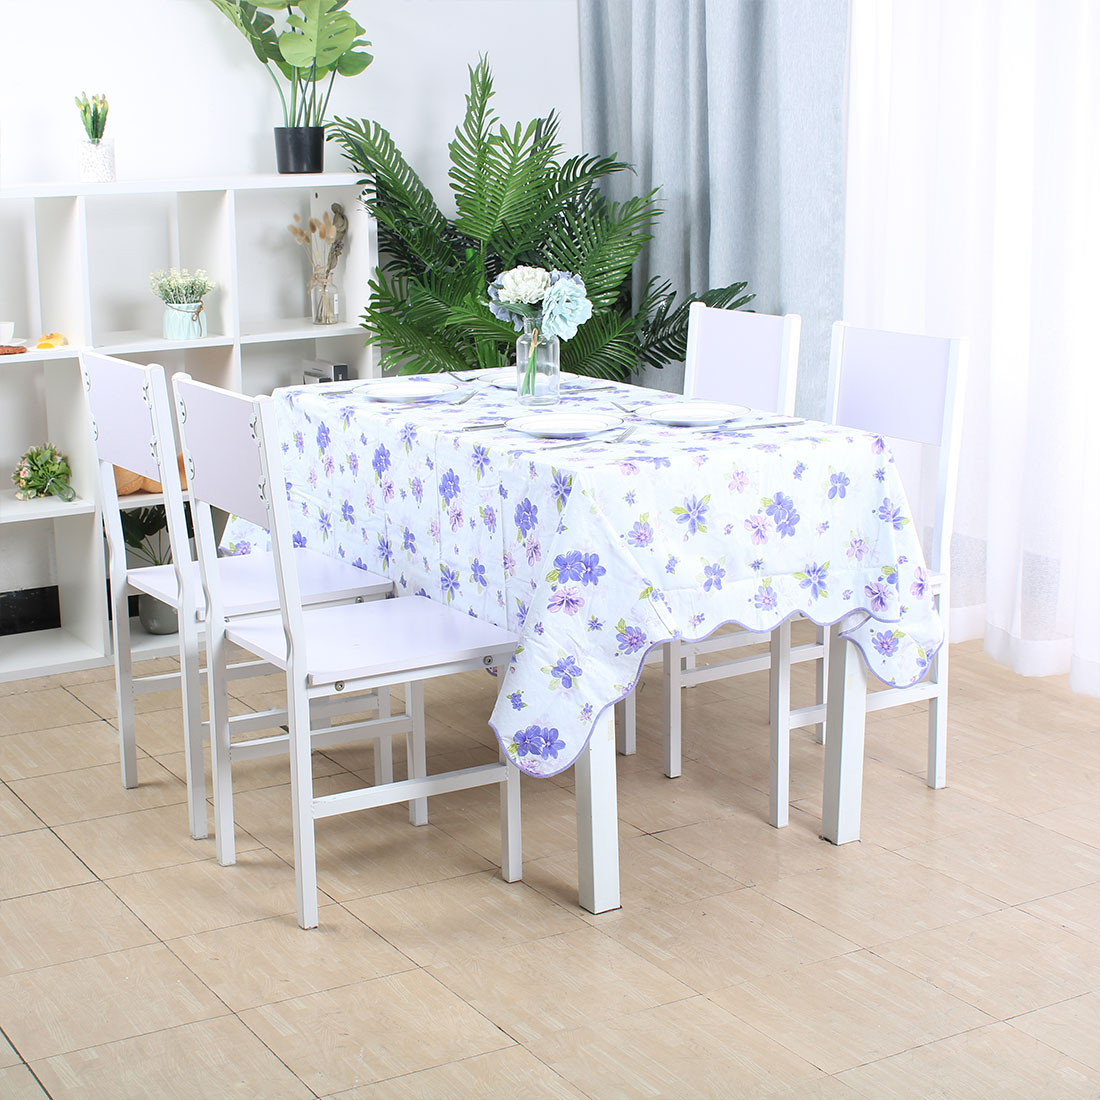 """Tablecloth PVC Oil Stain Resistant Wedding Camping Table Cloths 54"""" x 72"""",#9 - image 7 de 7"""